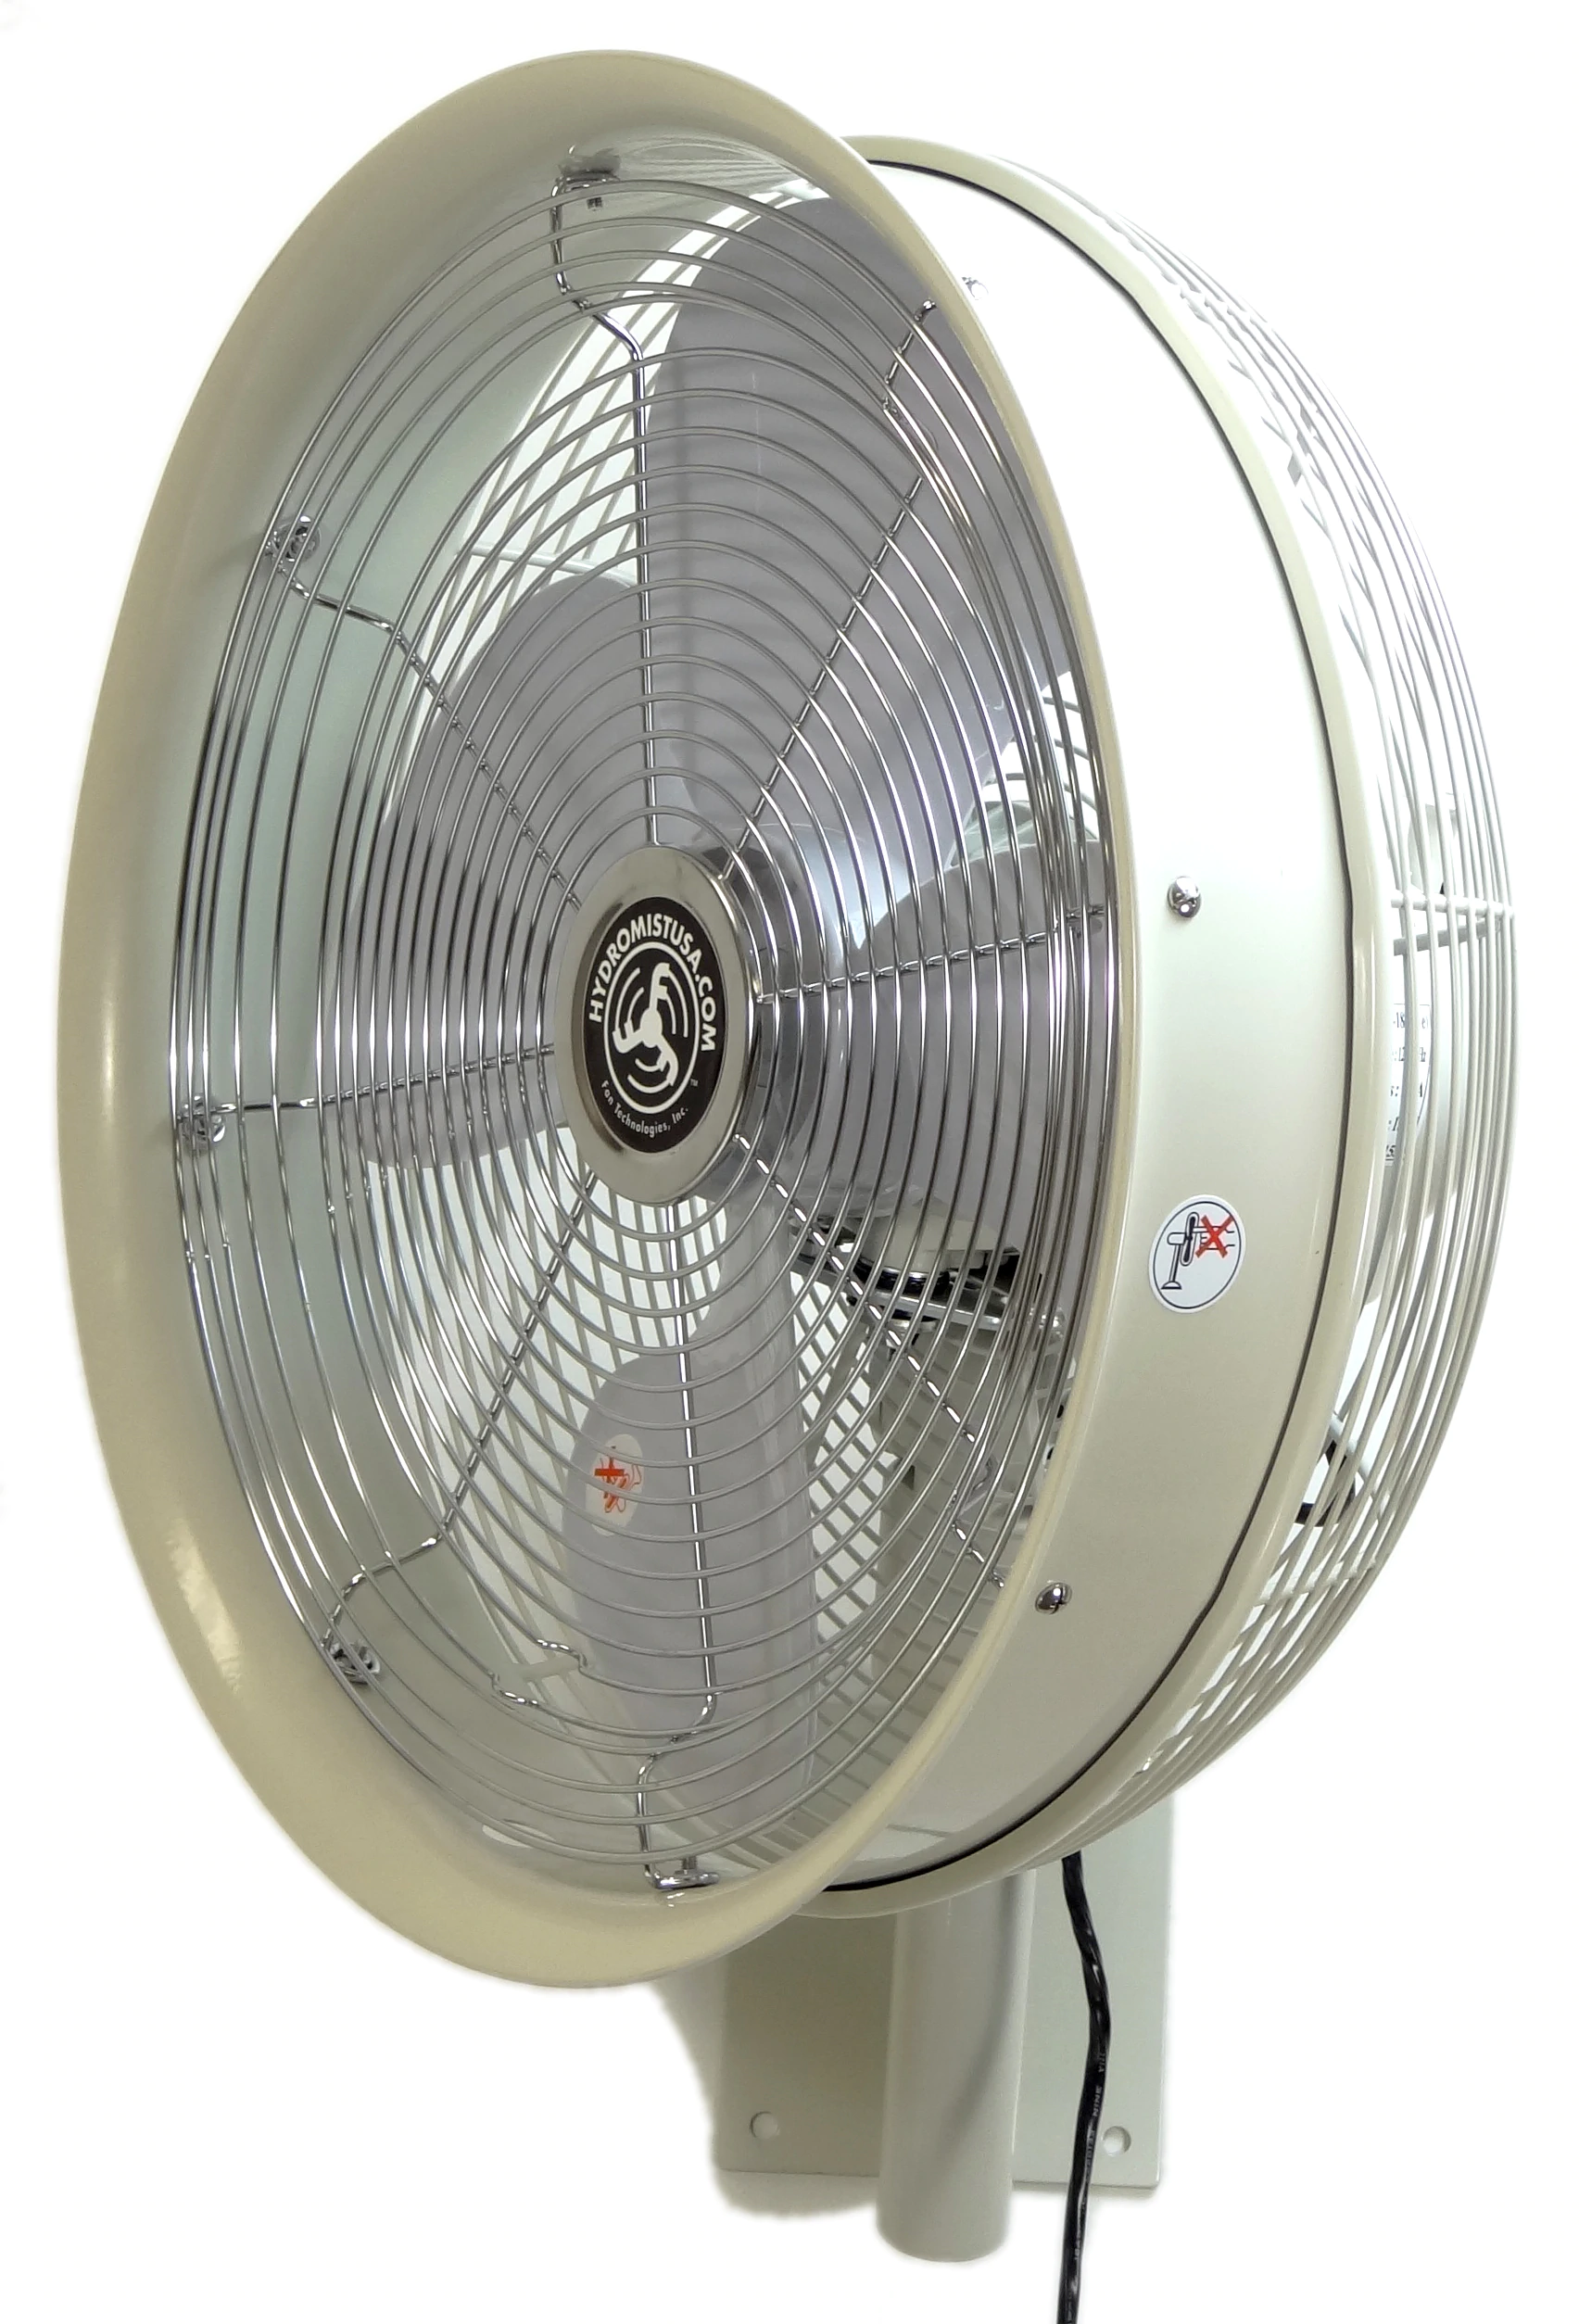 Outdoor 18 Inch Shrouded Oscillating Fan only-3 speed control on cord side view